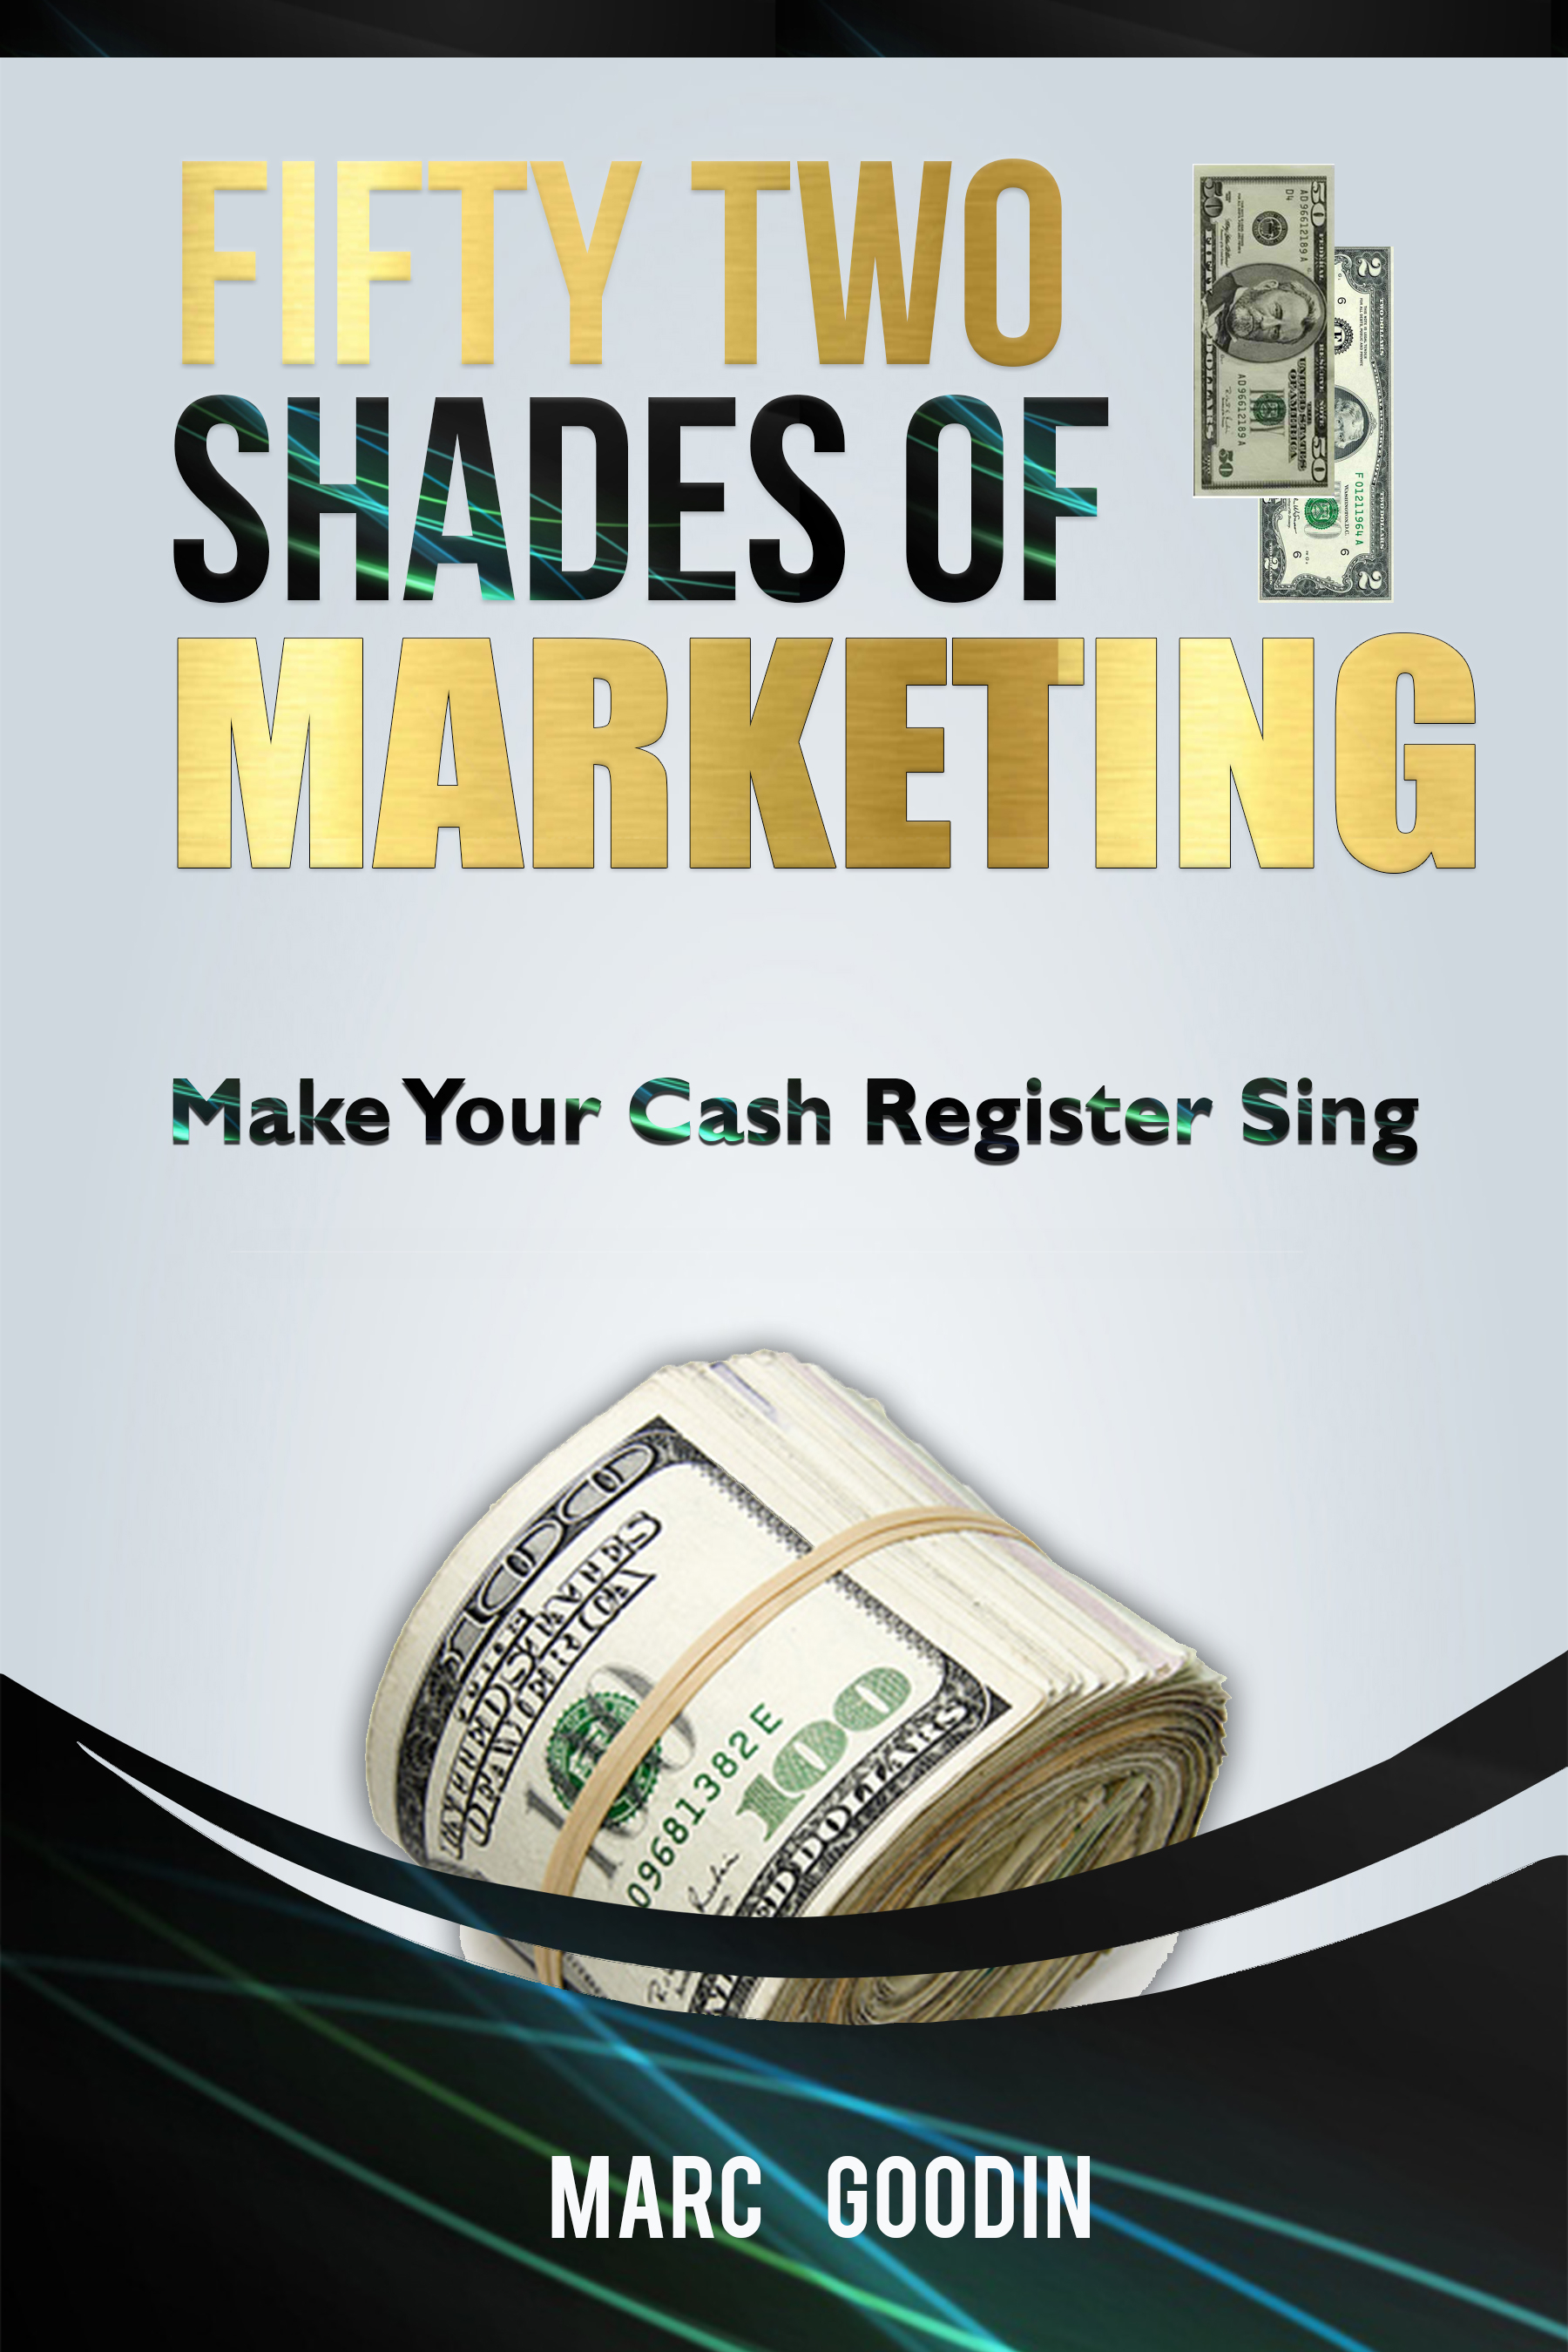 Fifty Two Shades Of Marketing.  Make Your Cash Register Sing. By: Marc Goodin